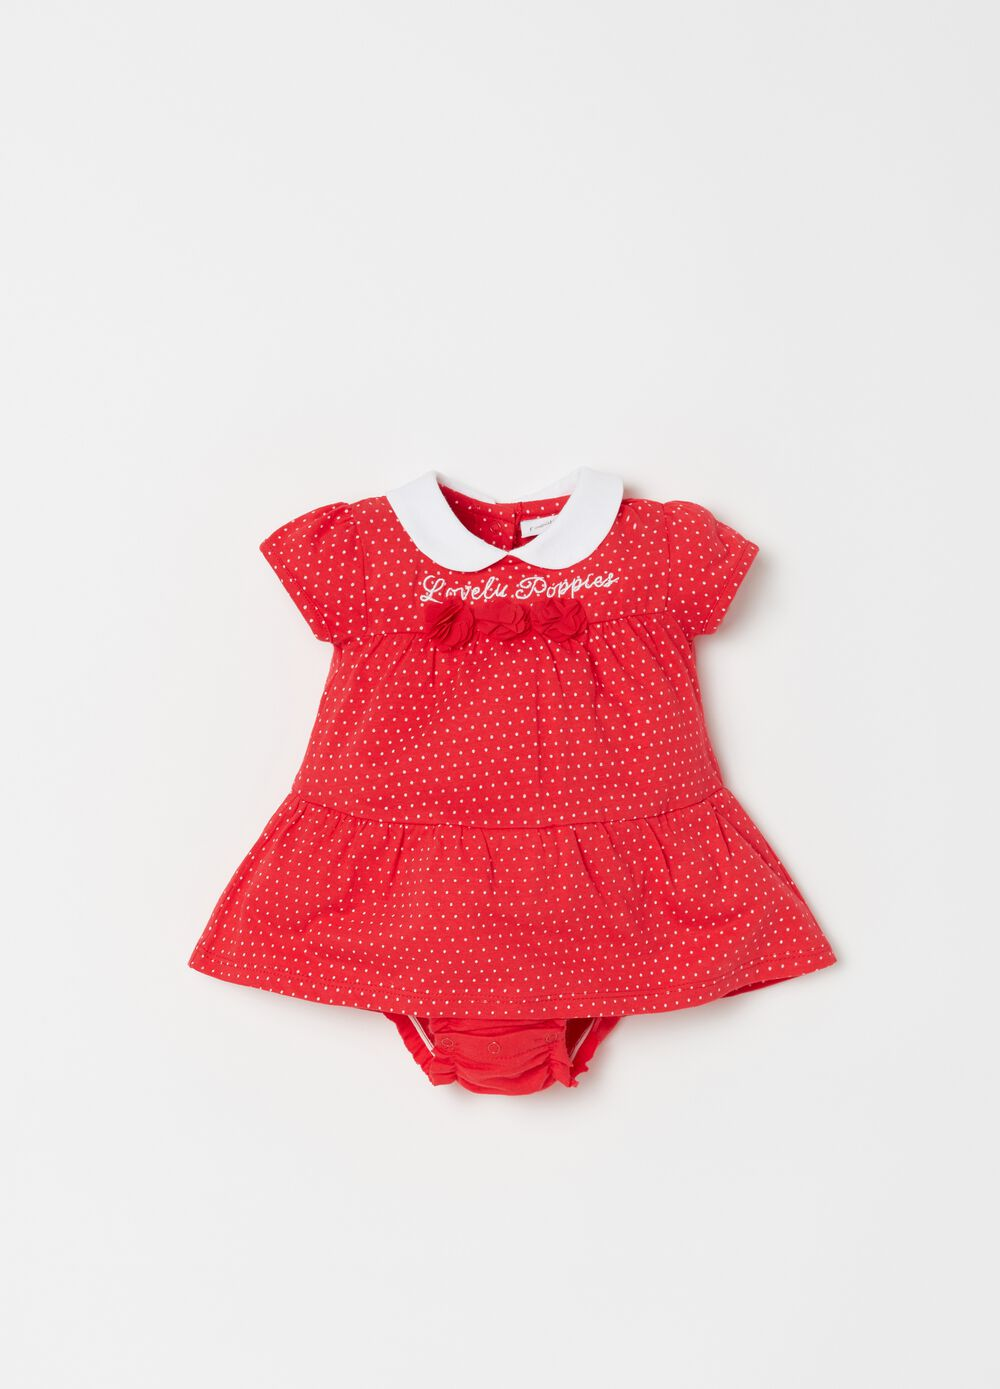 Biocotton onesie with polka dot pattern